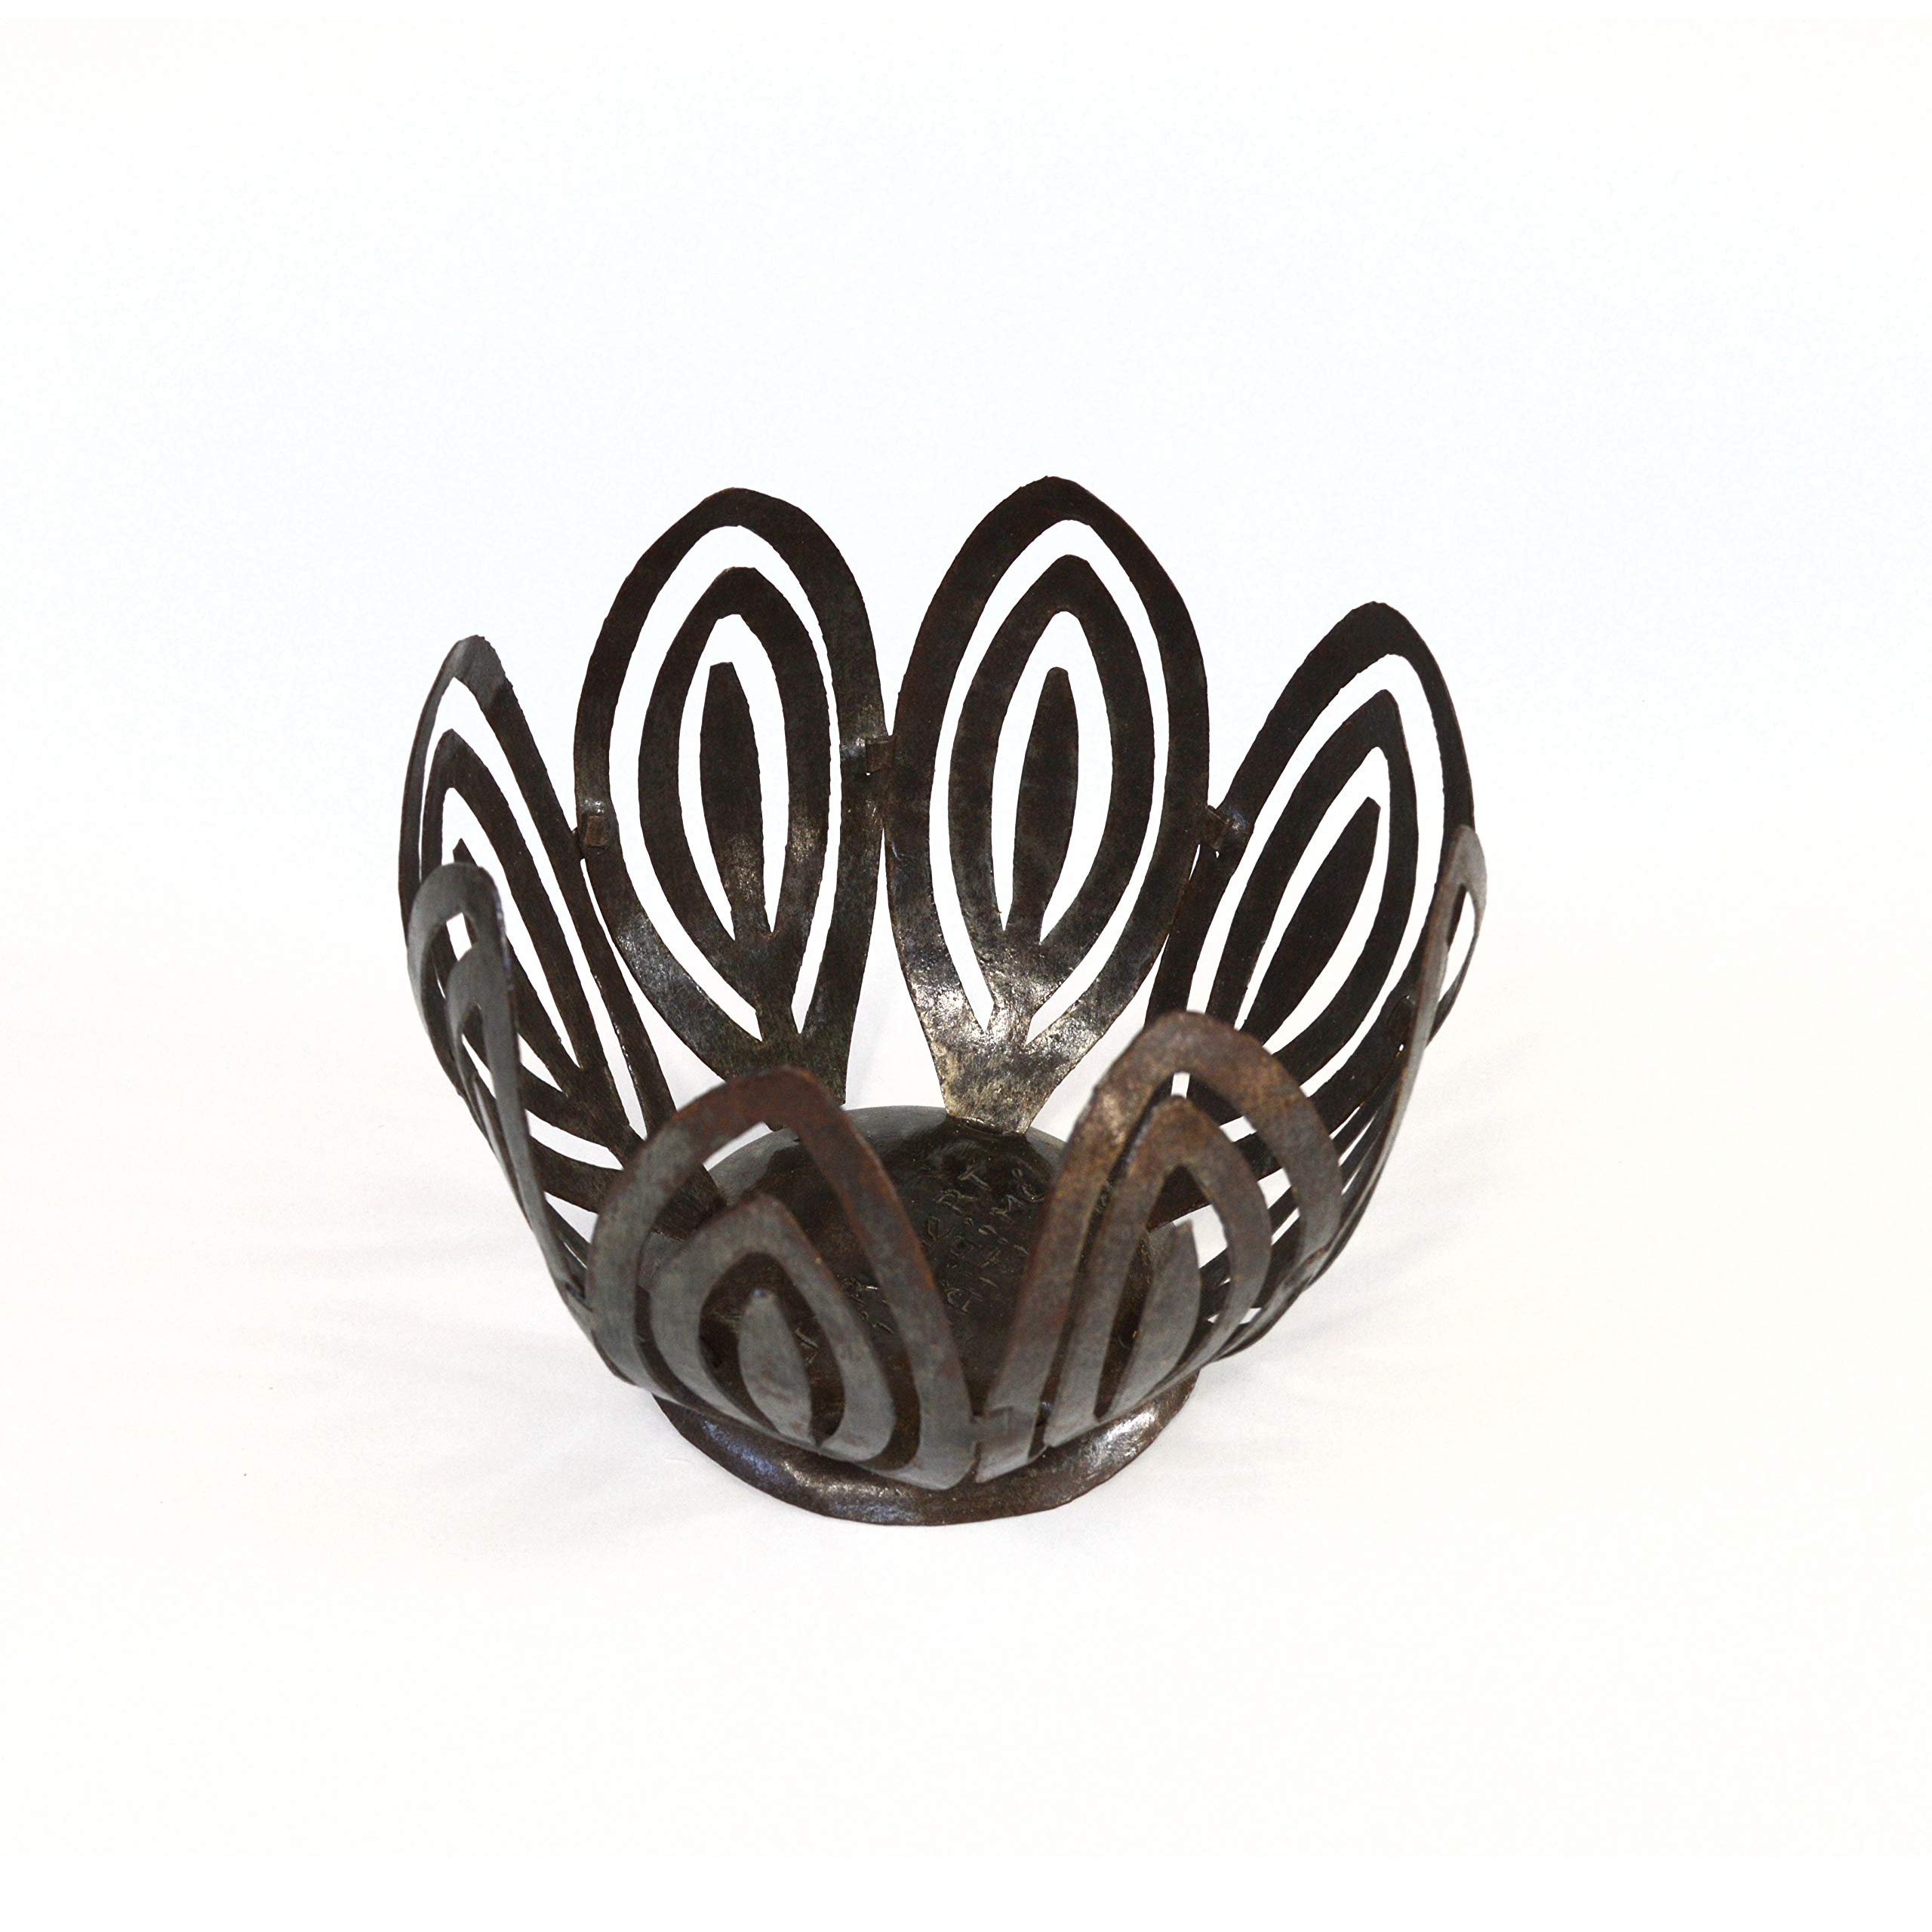 Caribbean Basics Steel Drum Fruit Bowl,Candle Holder by Caribbean Basics